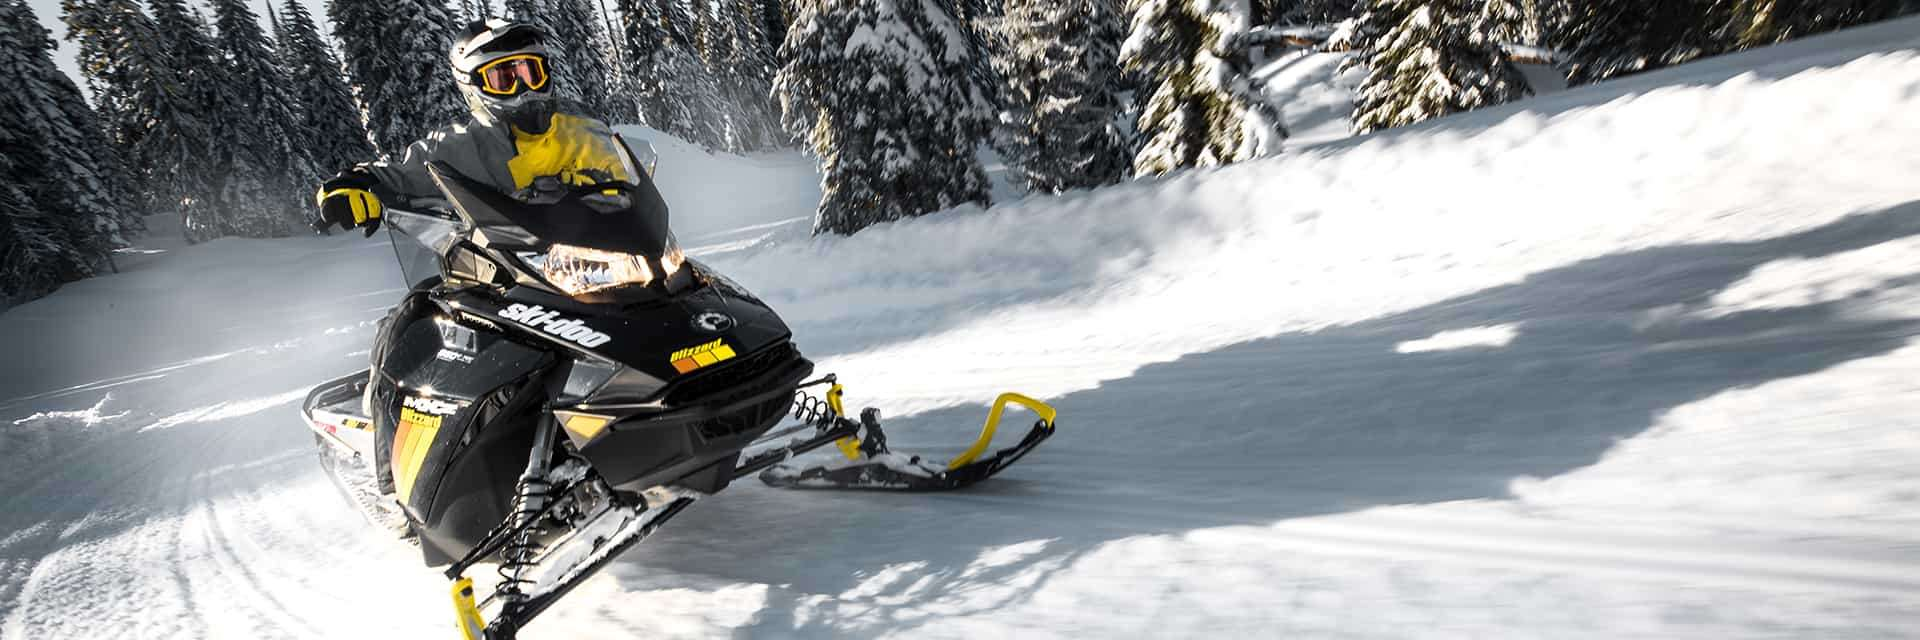 Ski-Doo is available at Allegheny Ridge Cycle | Windber, PA